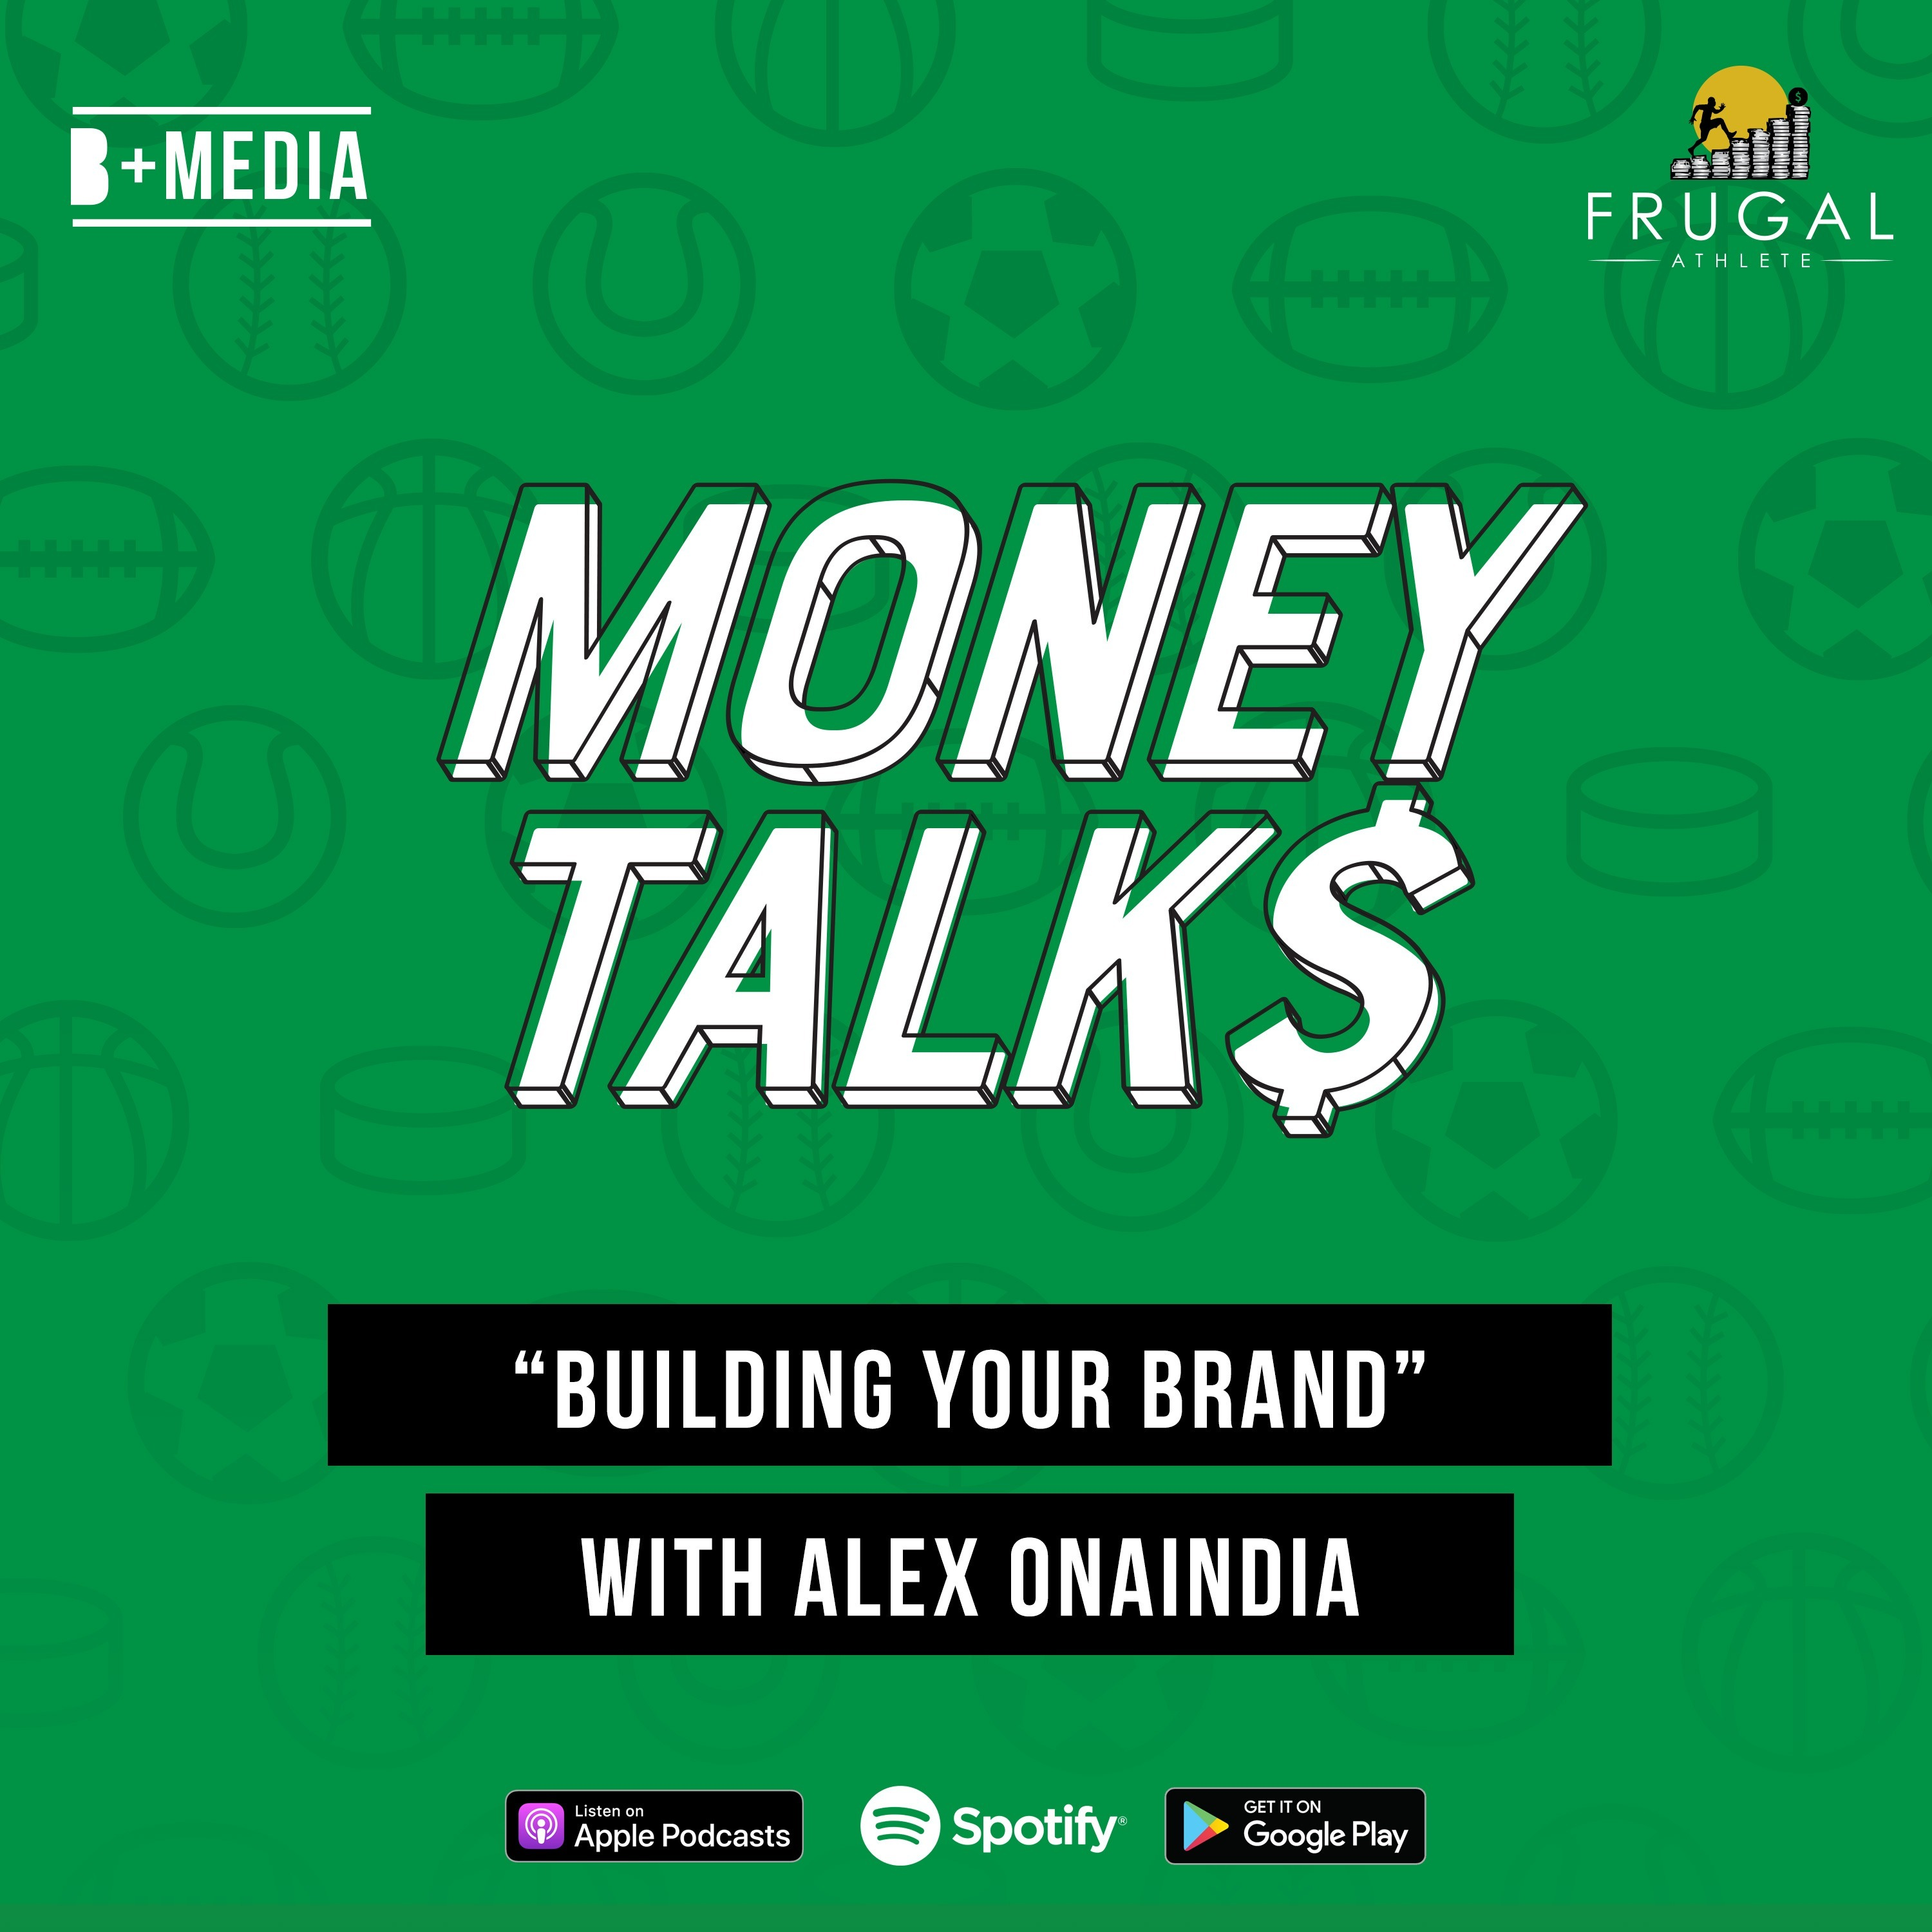 Building Your Brand with Alex Onaindia